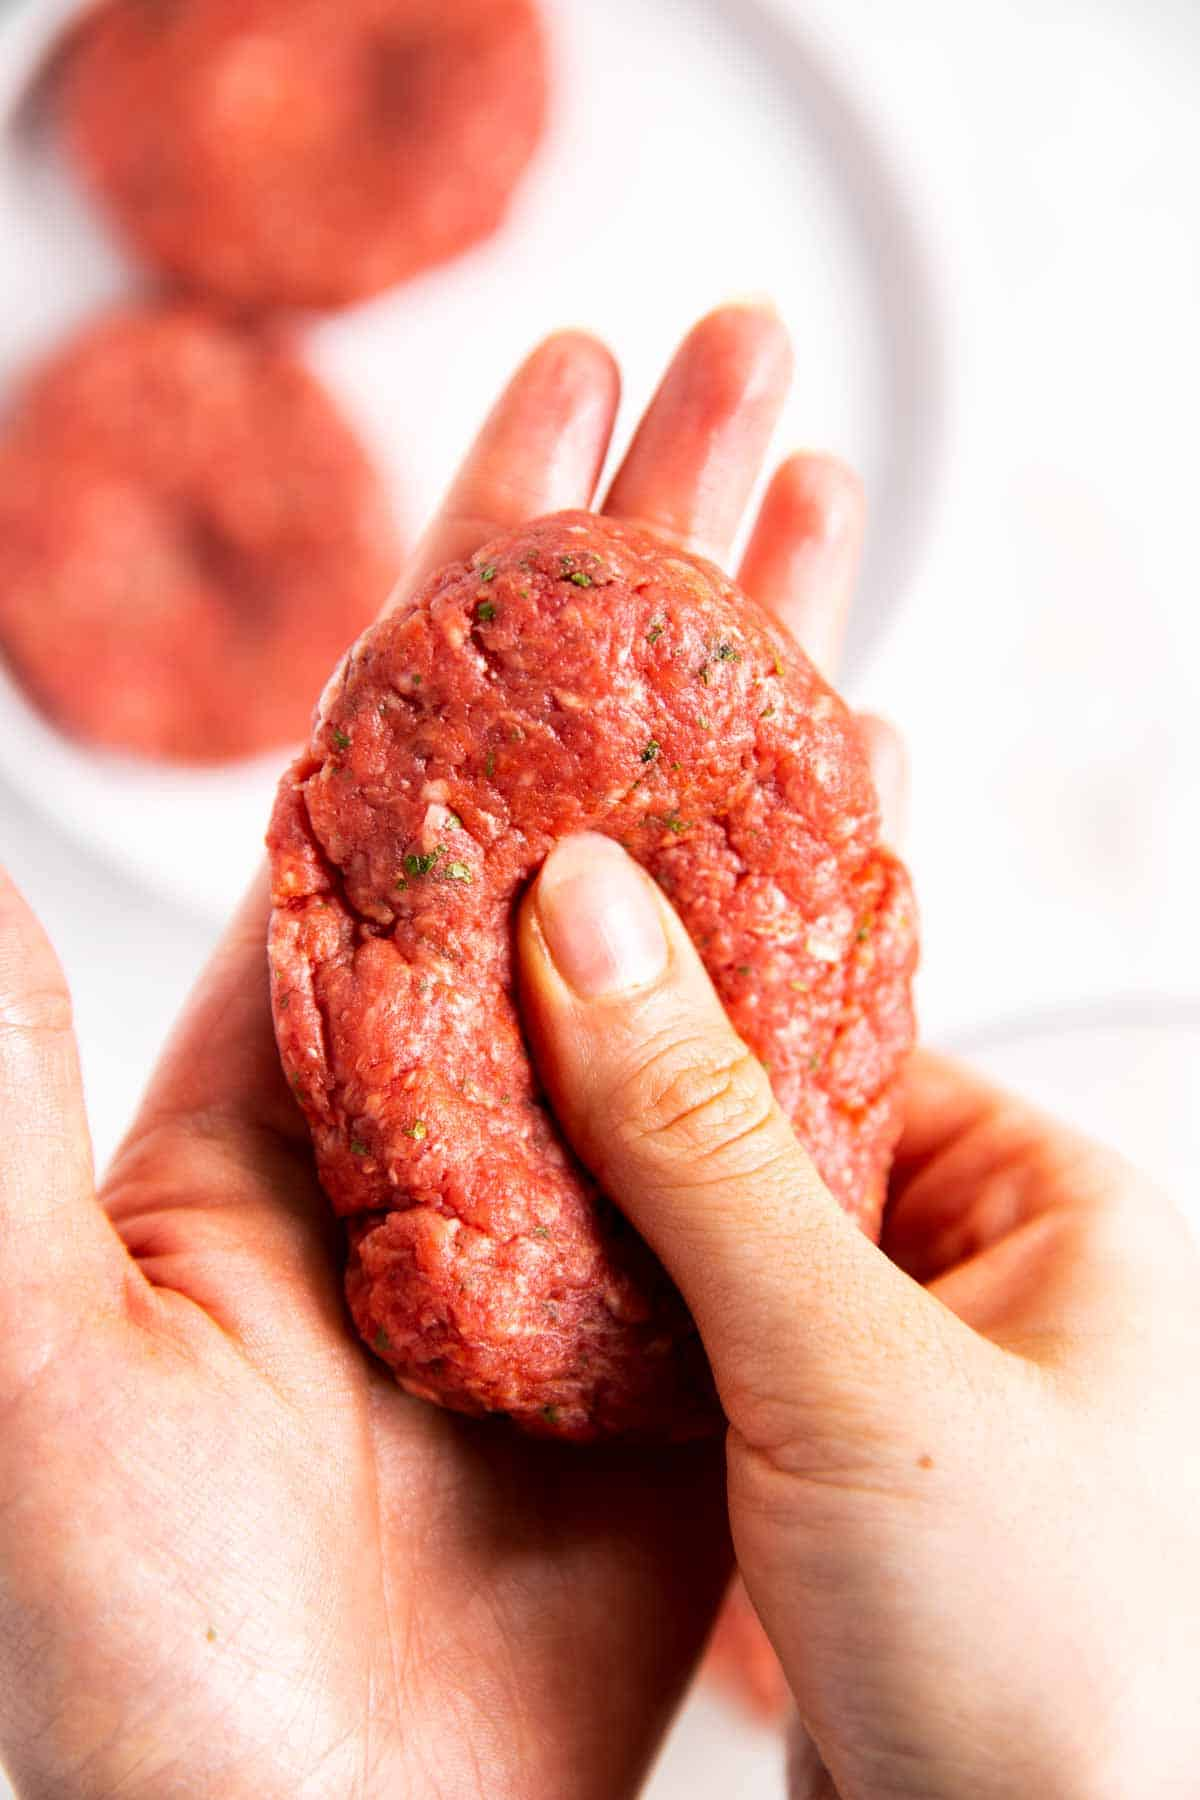 female hands shaping burger patty